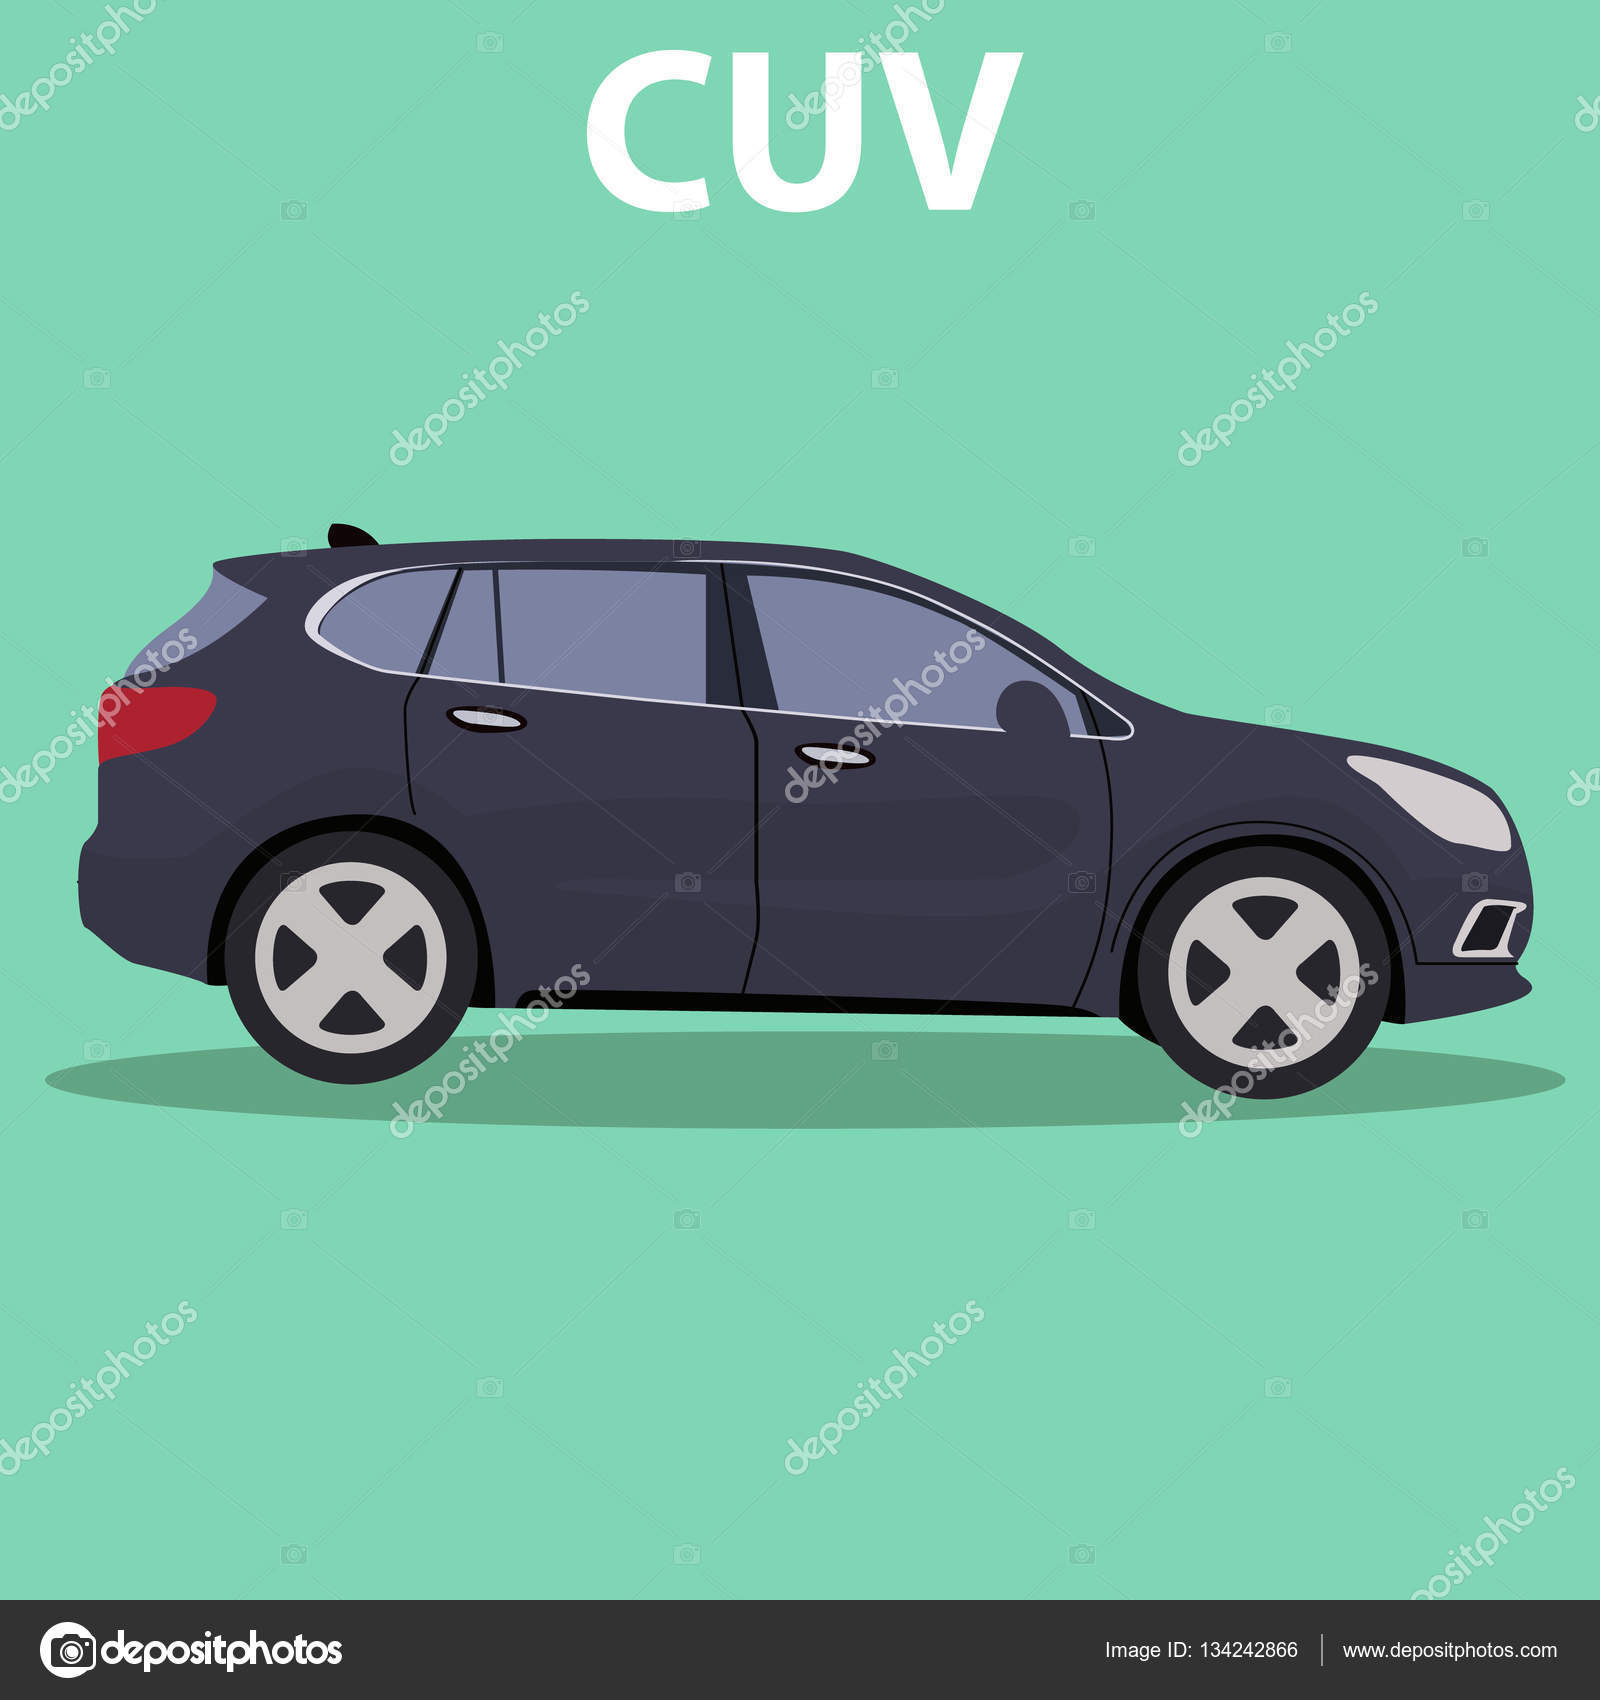 Cuv Car Car Cuv Crossover Stock Vector Royalty 134242866